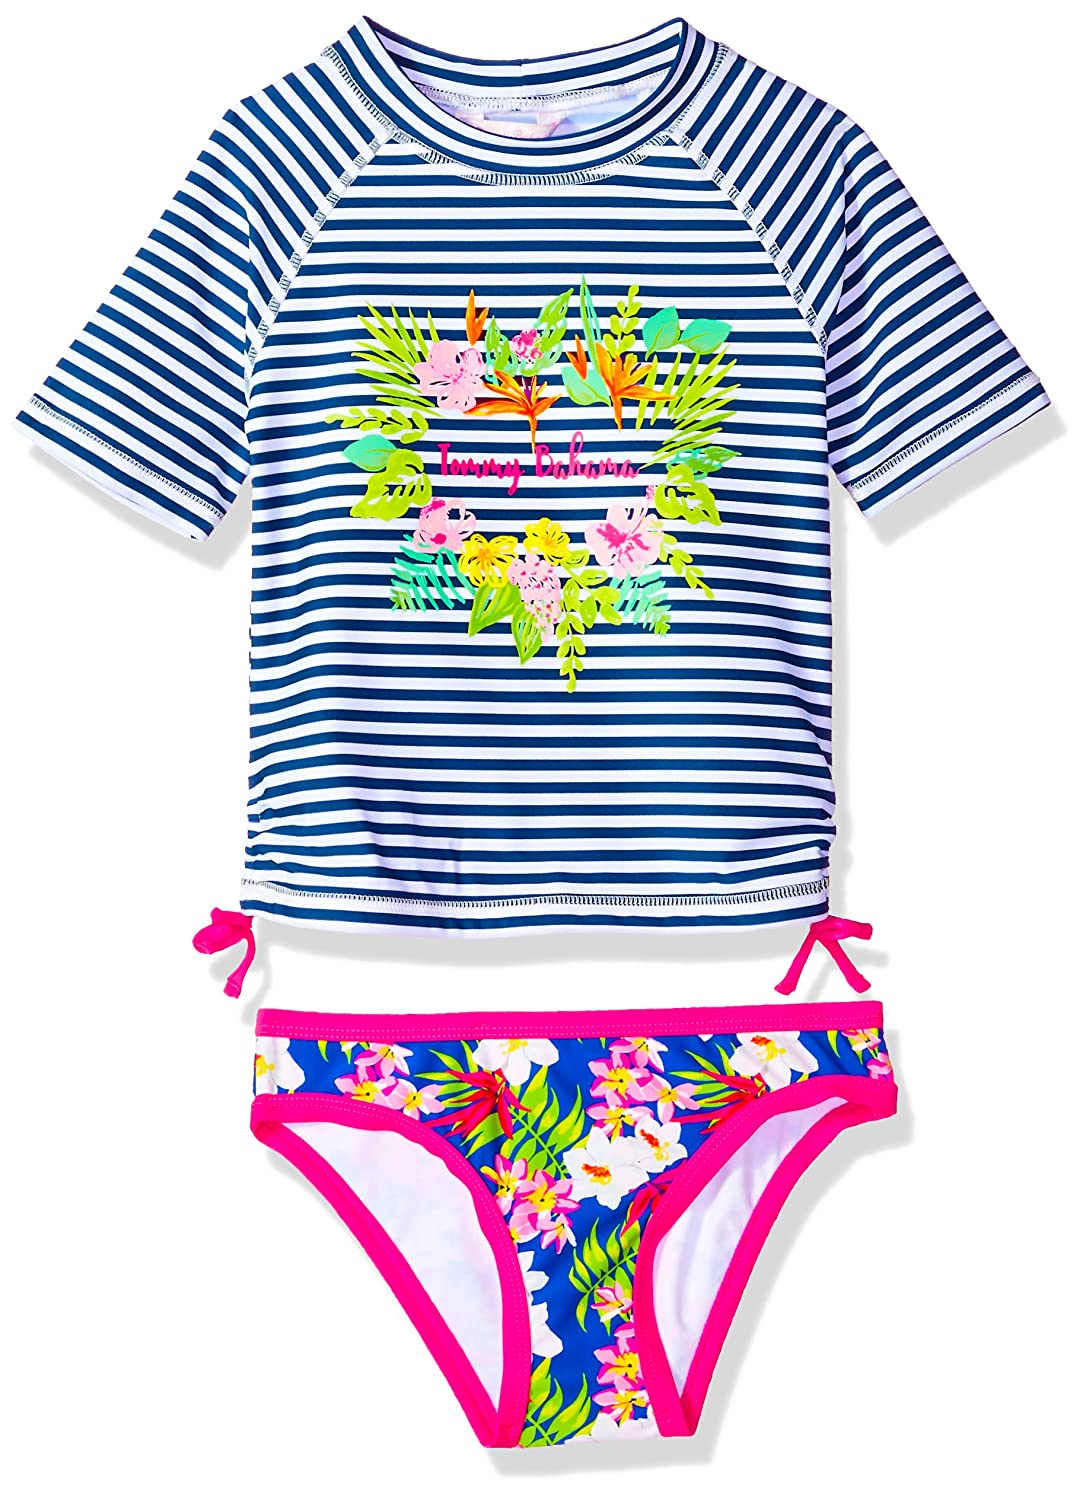 b7af748053457 Amazon.com: Tommy Bahama Girls' 2-Piece Rashguard and Swim Bottoms Set:  Clothing